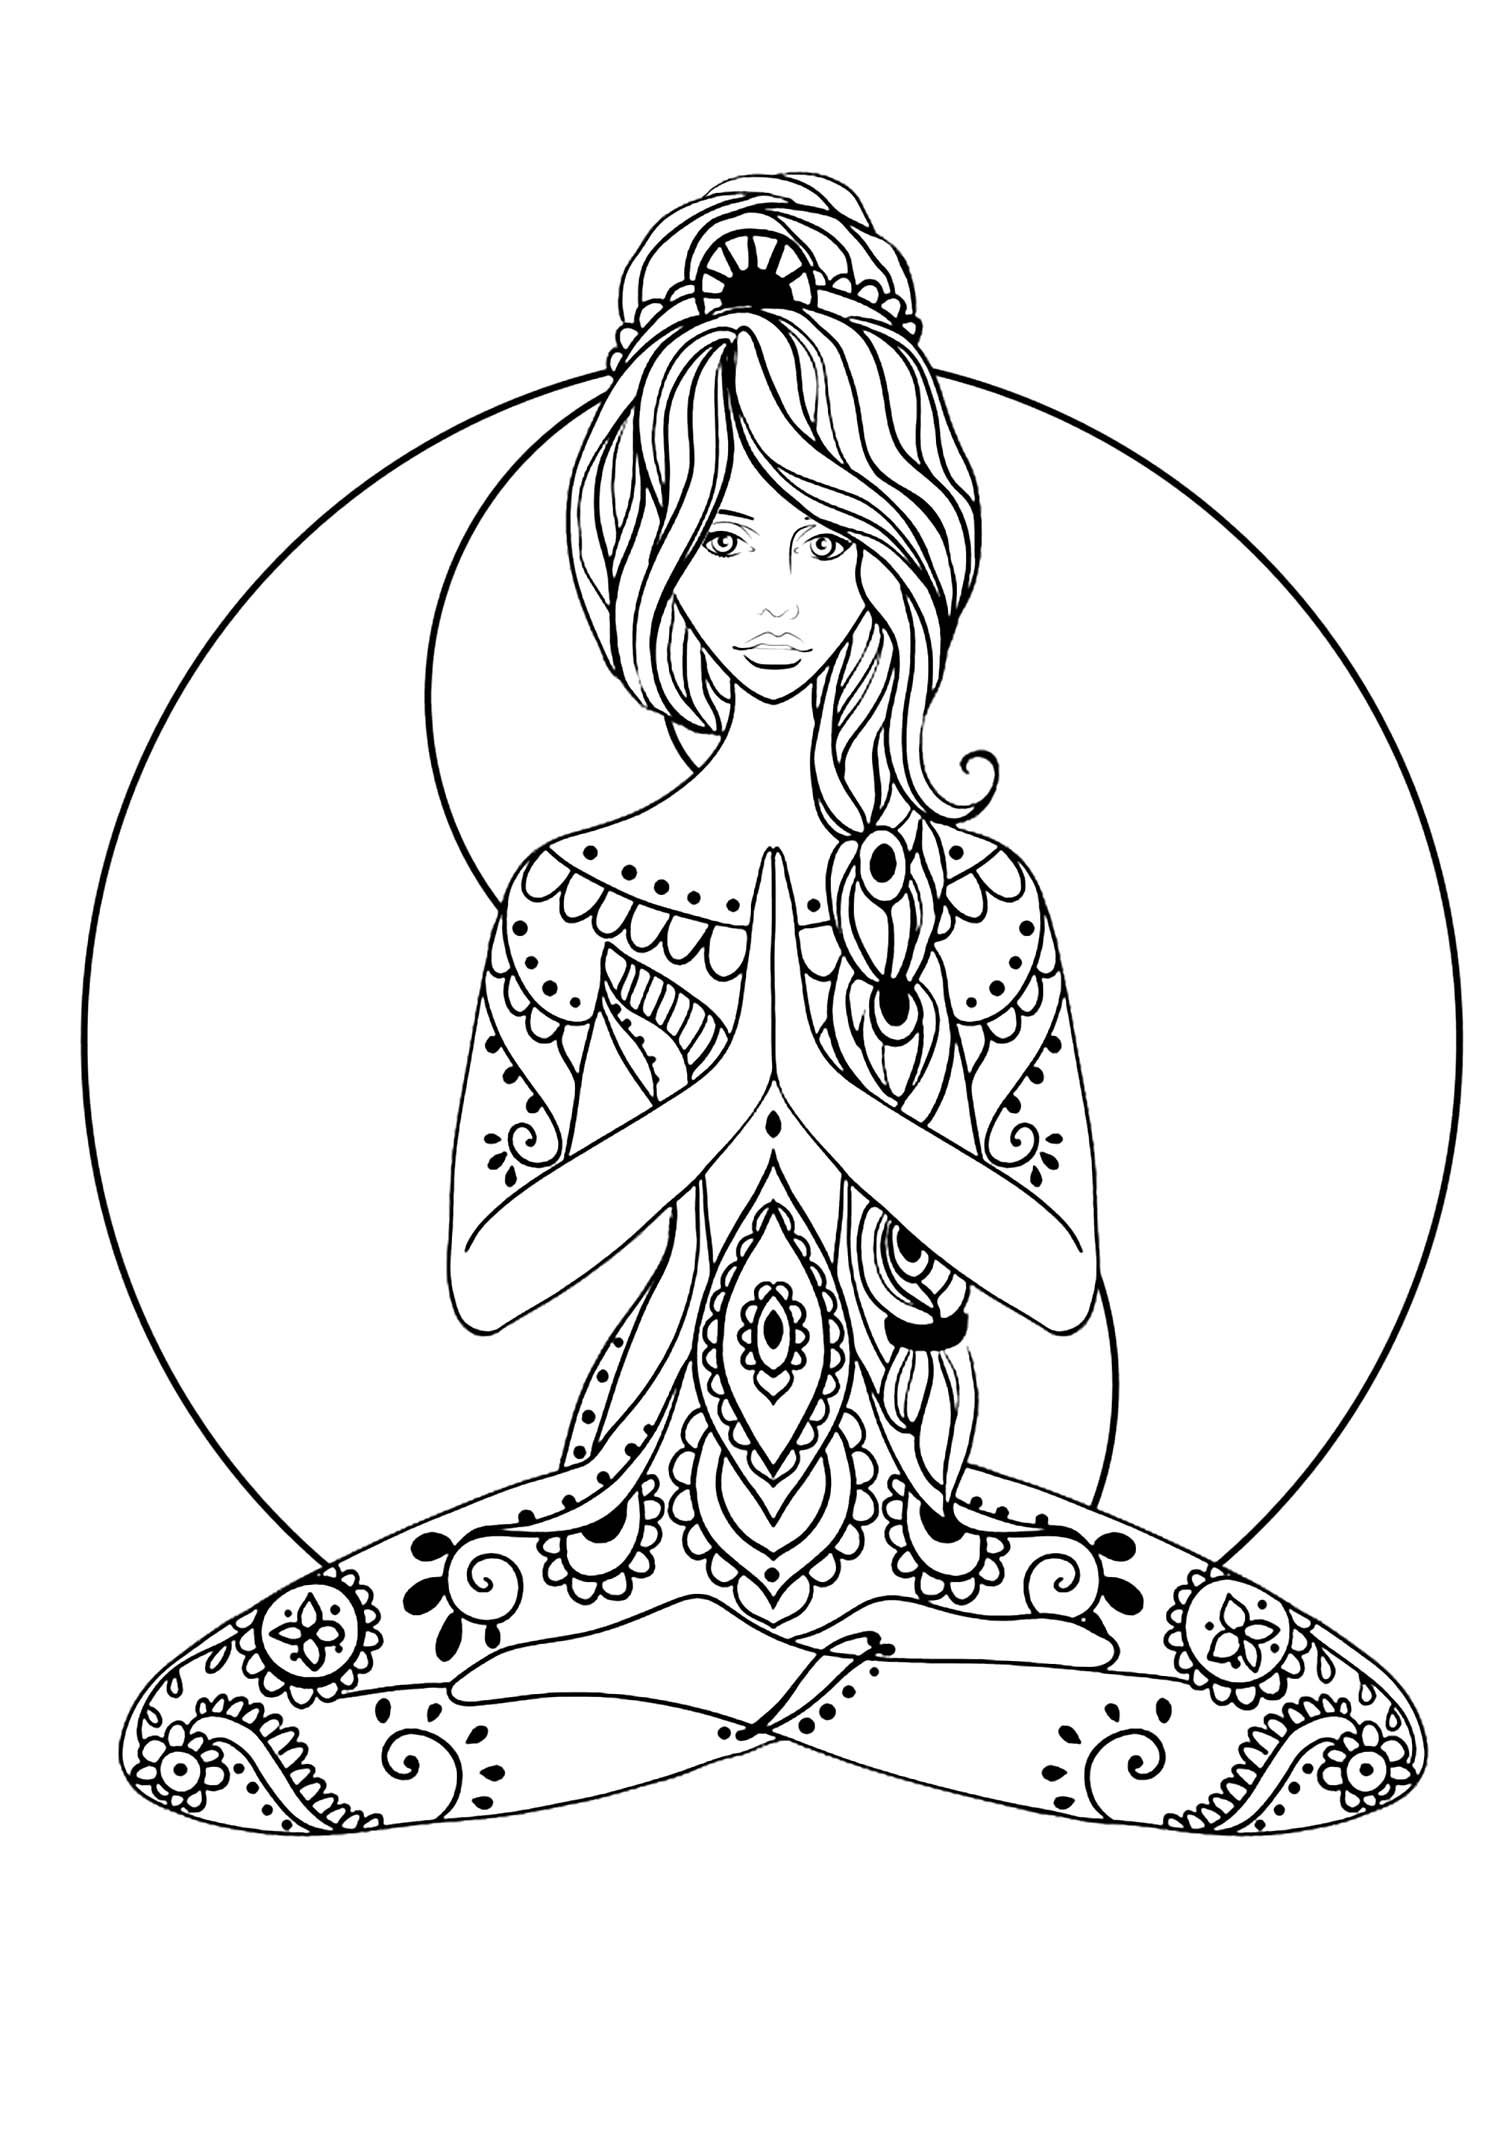 Yoga Coloring page (easy)